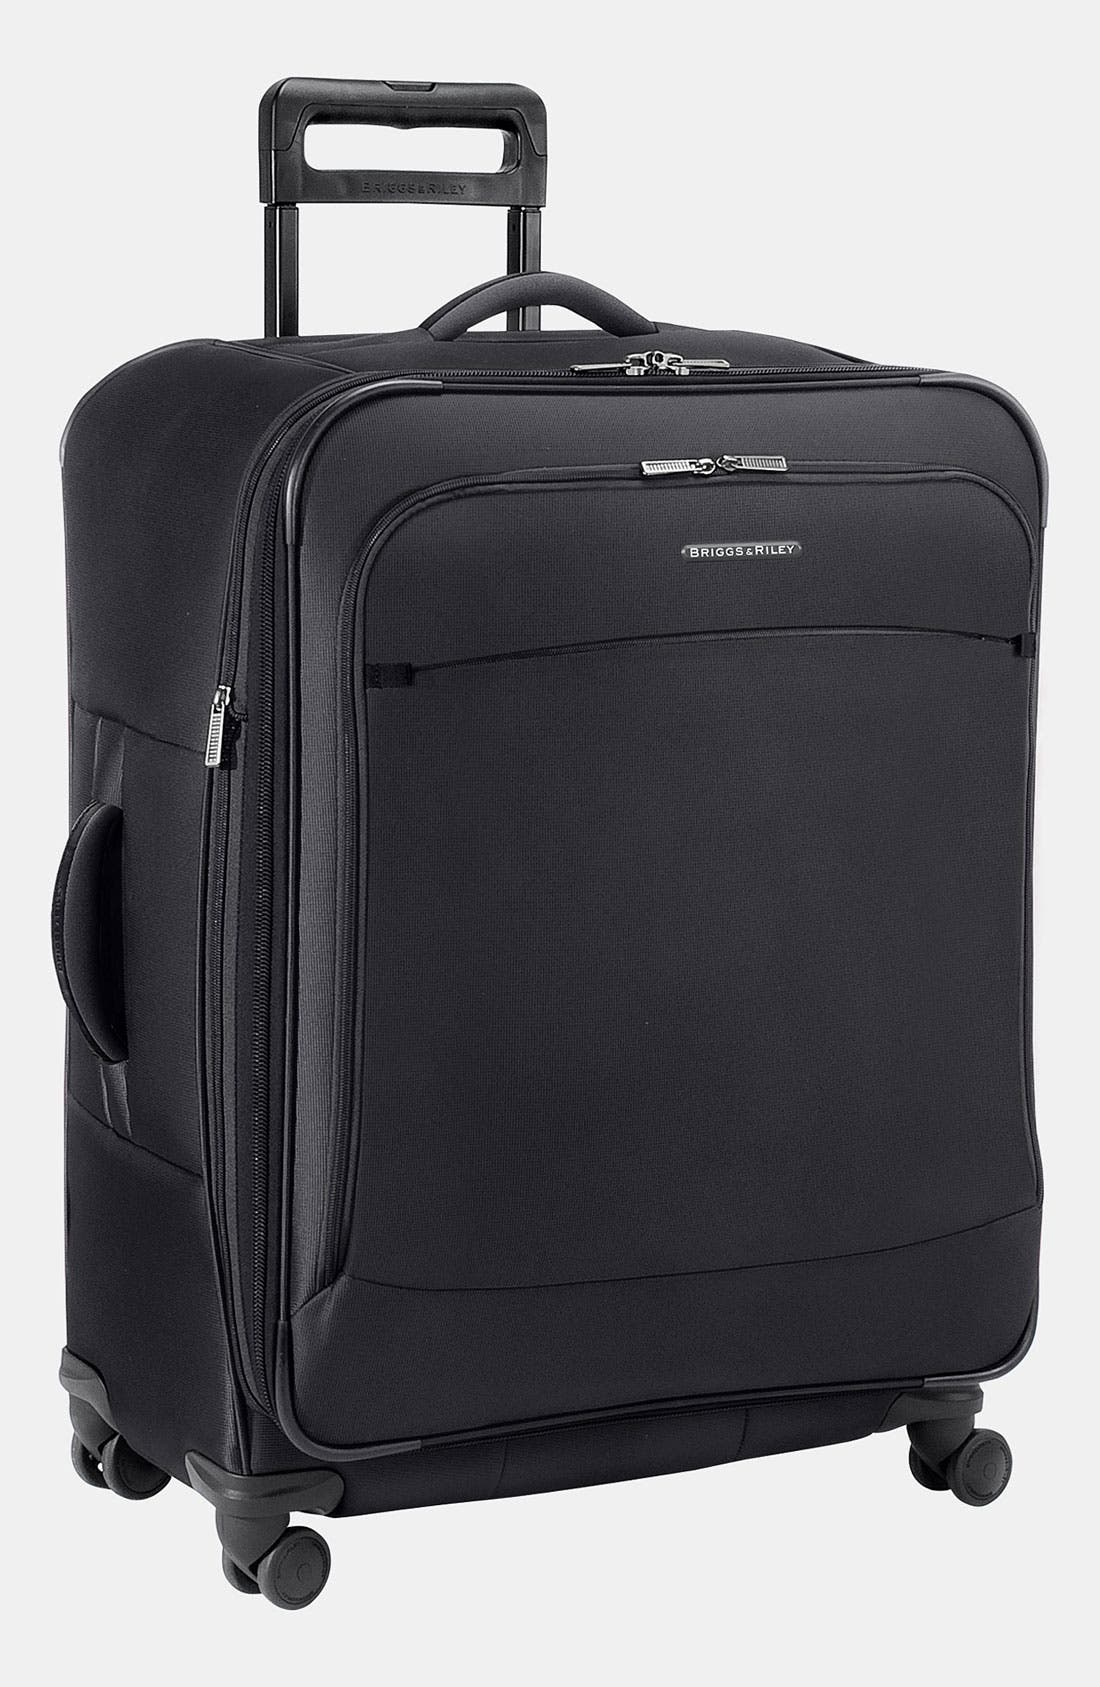 Alternate Image 1 Selected - Briggs & Riley 'Large' Expandable Upright Spinner Carry-On (27 Inch)